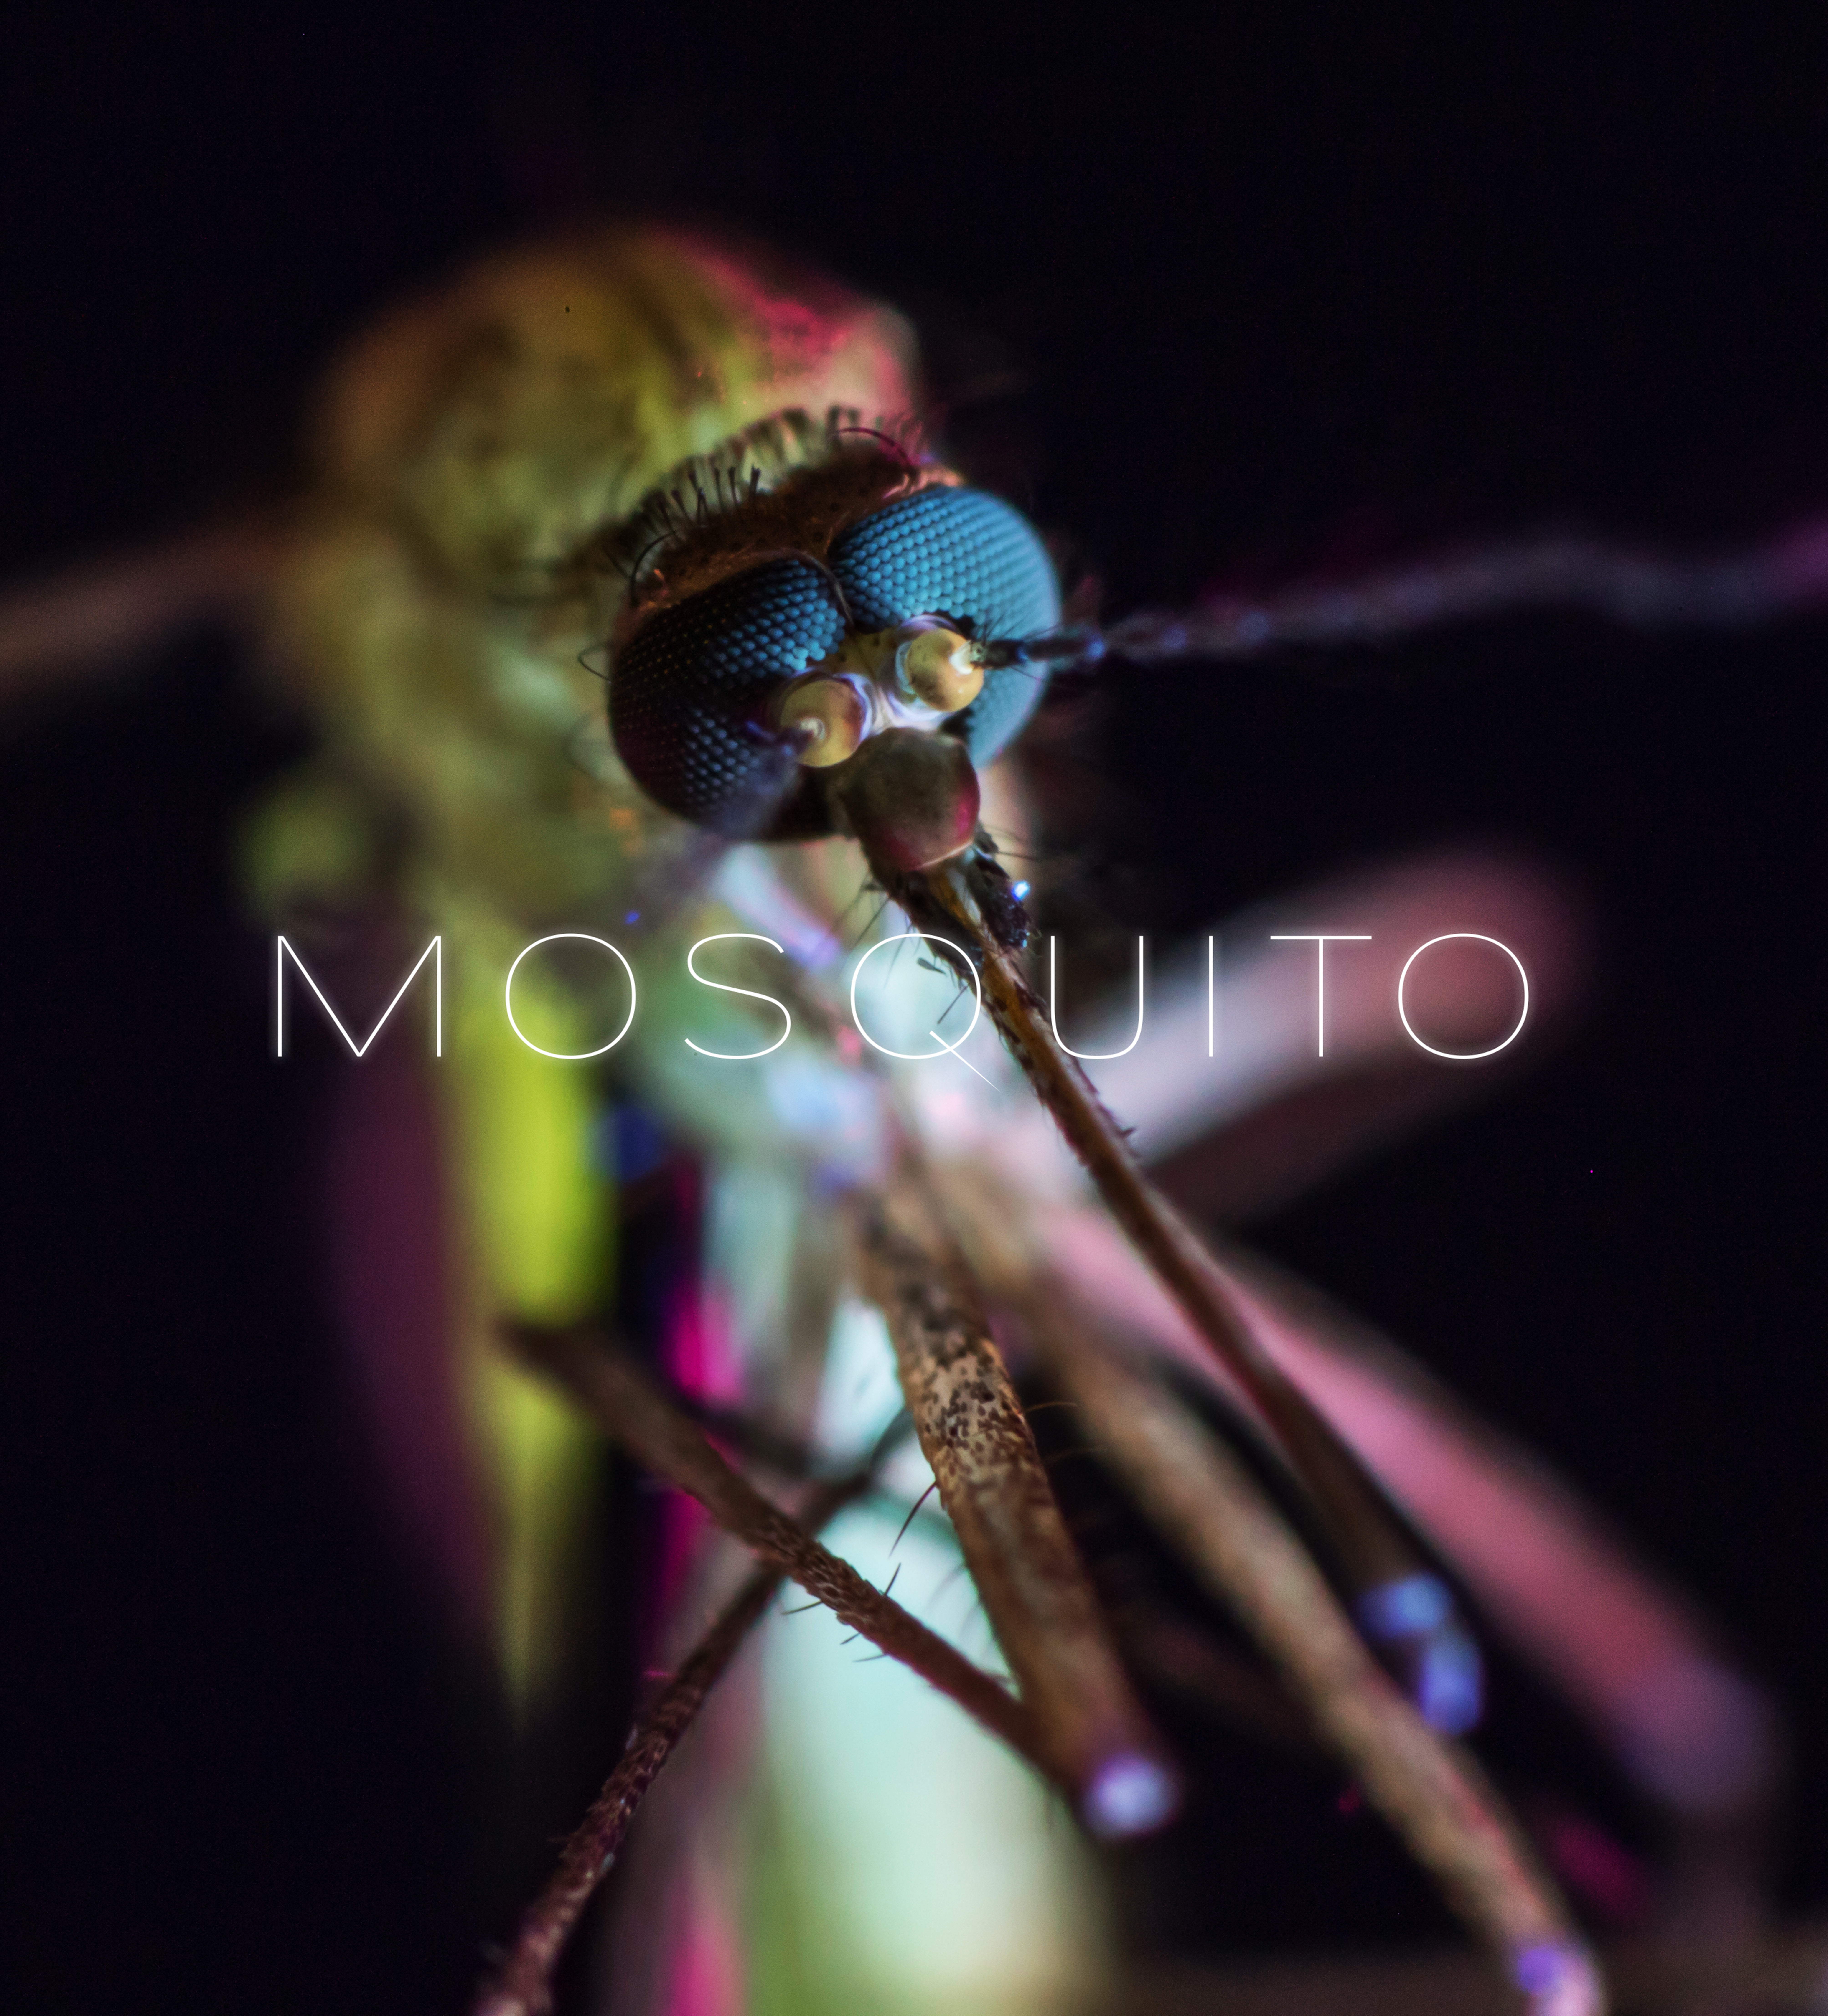 mosquito full movie download